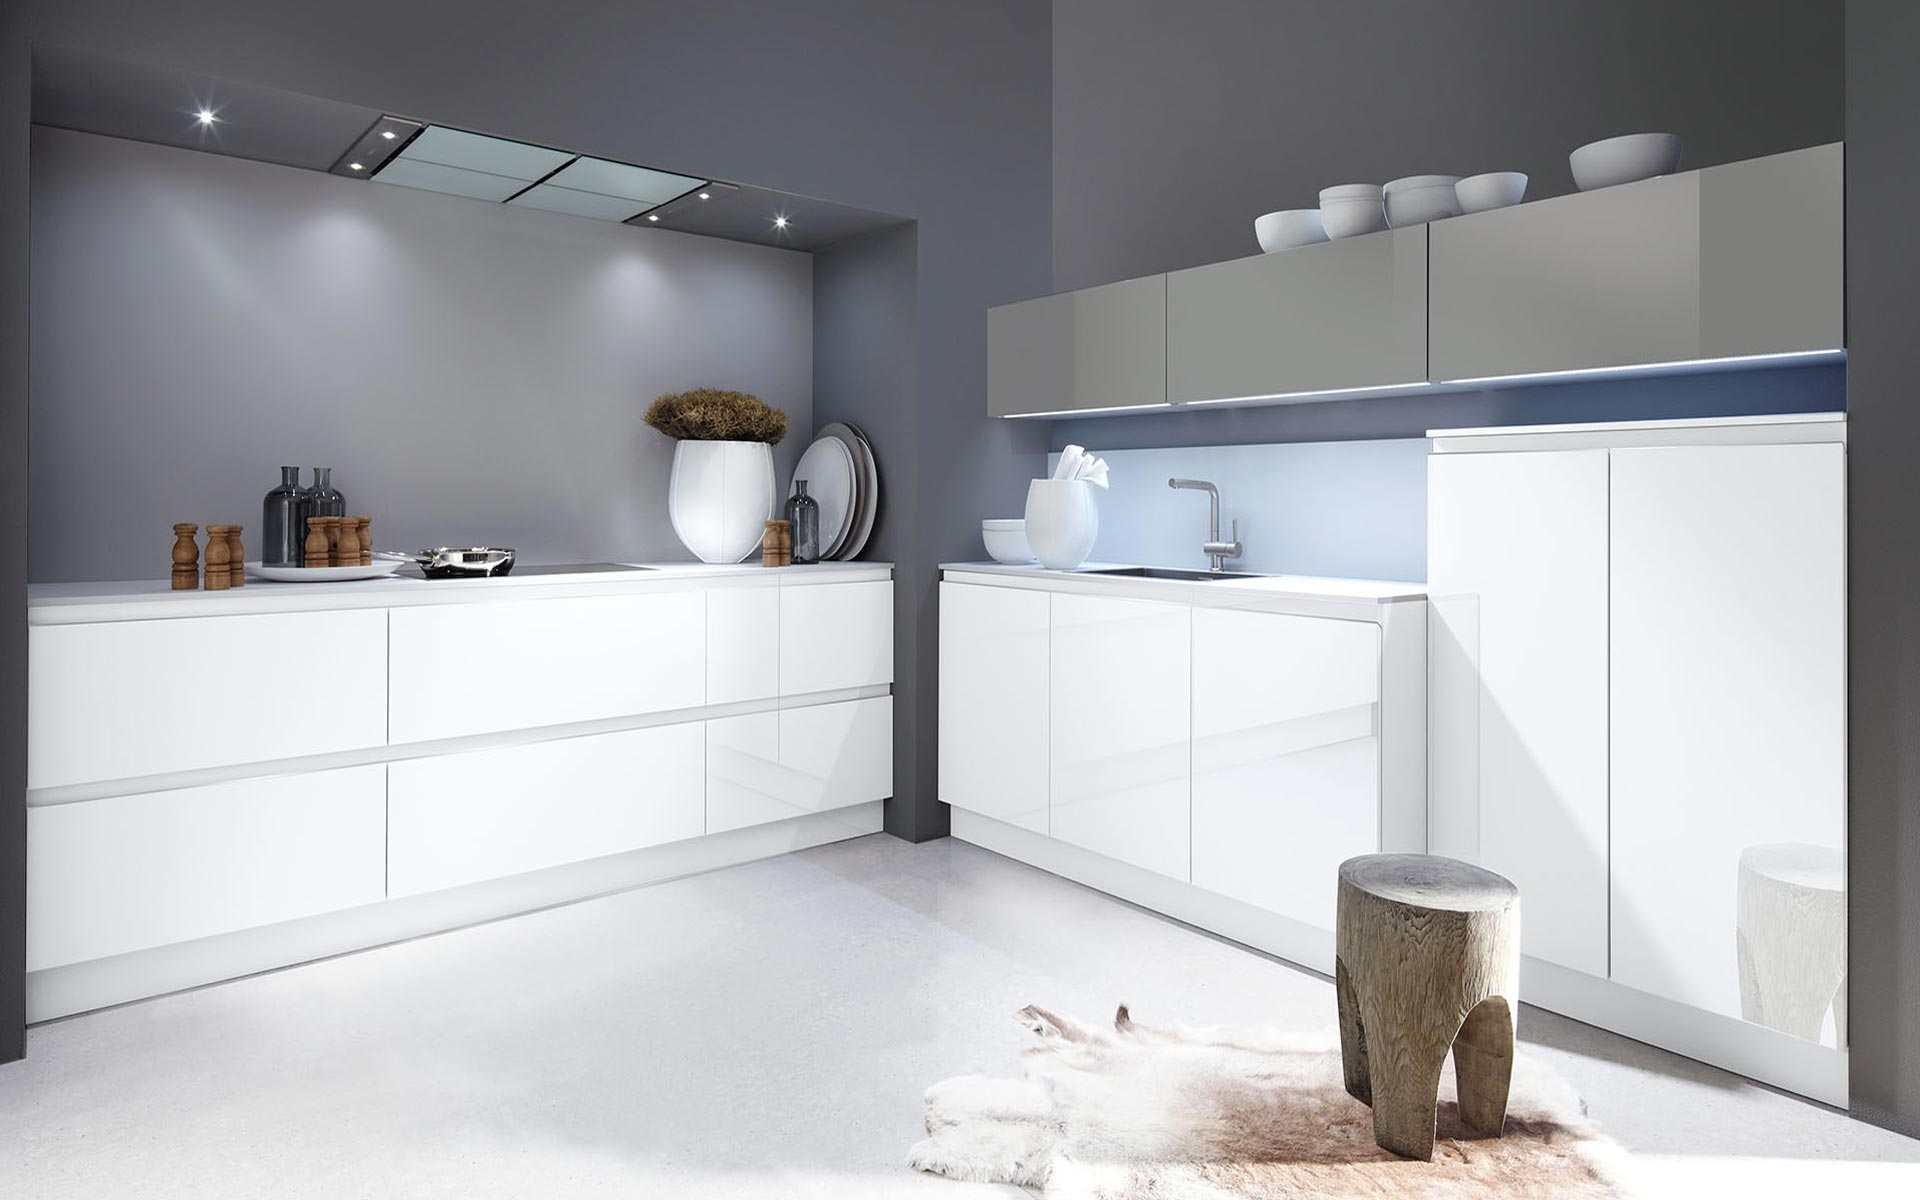 Toronto: Kitchens from Germany, Europe. Luce Colored Onyxgrau • Luce Optiwhite